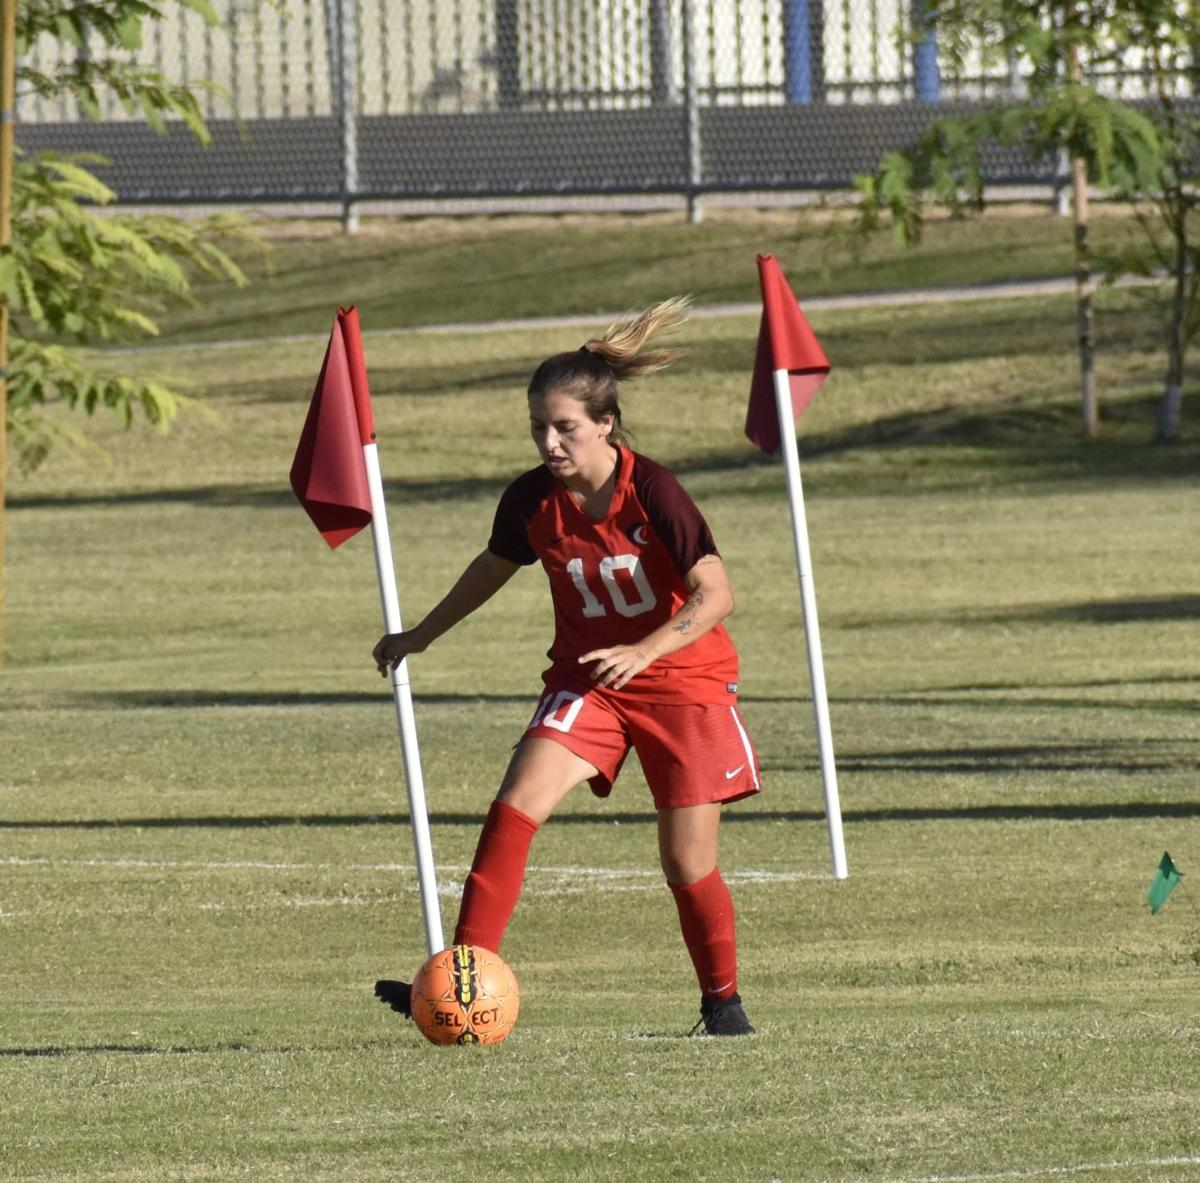 Maria Azarias was awarded the ACCAC Player of the Year.